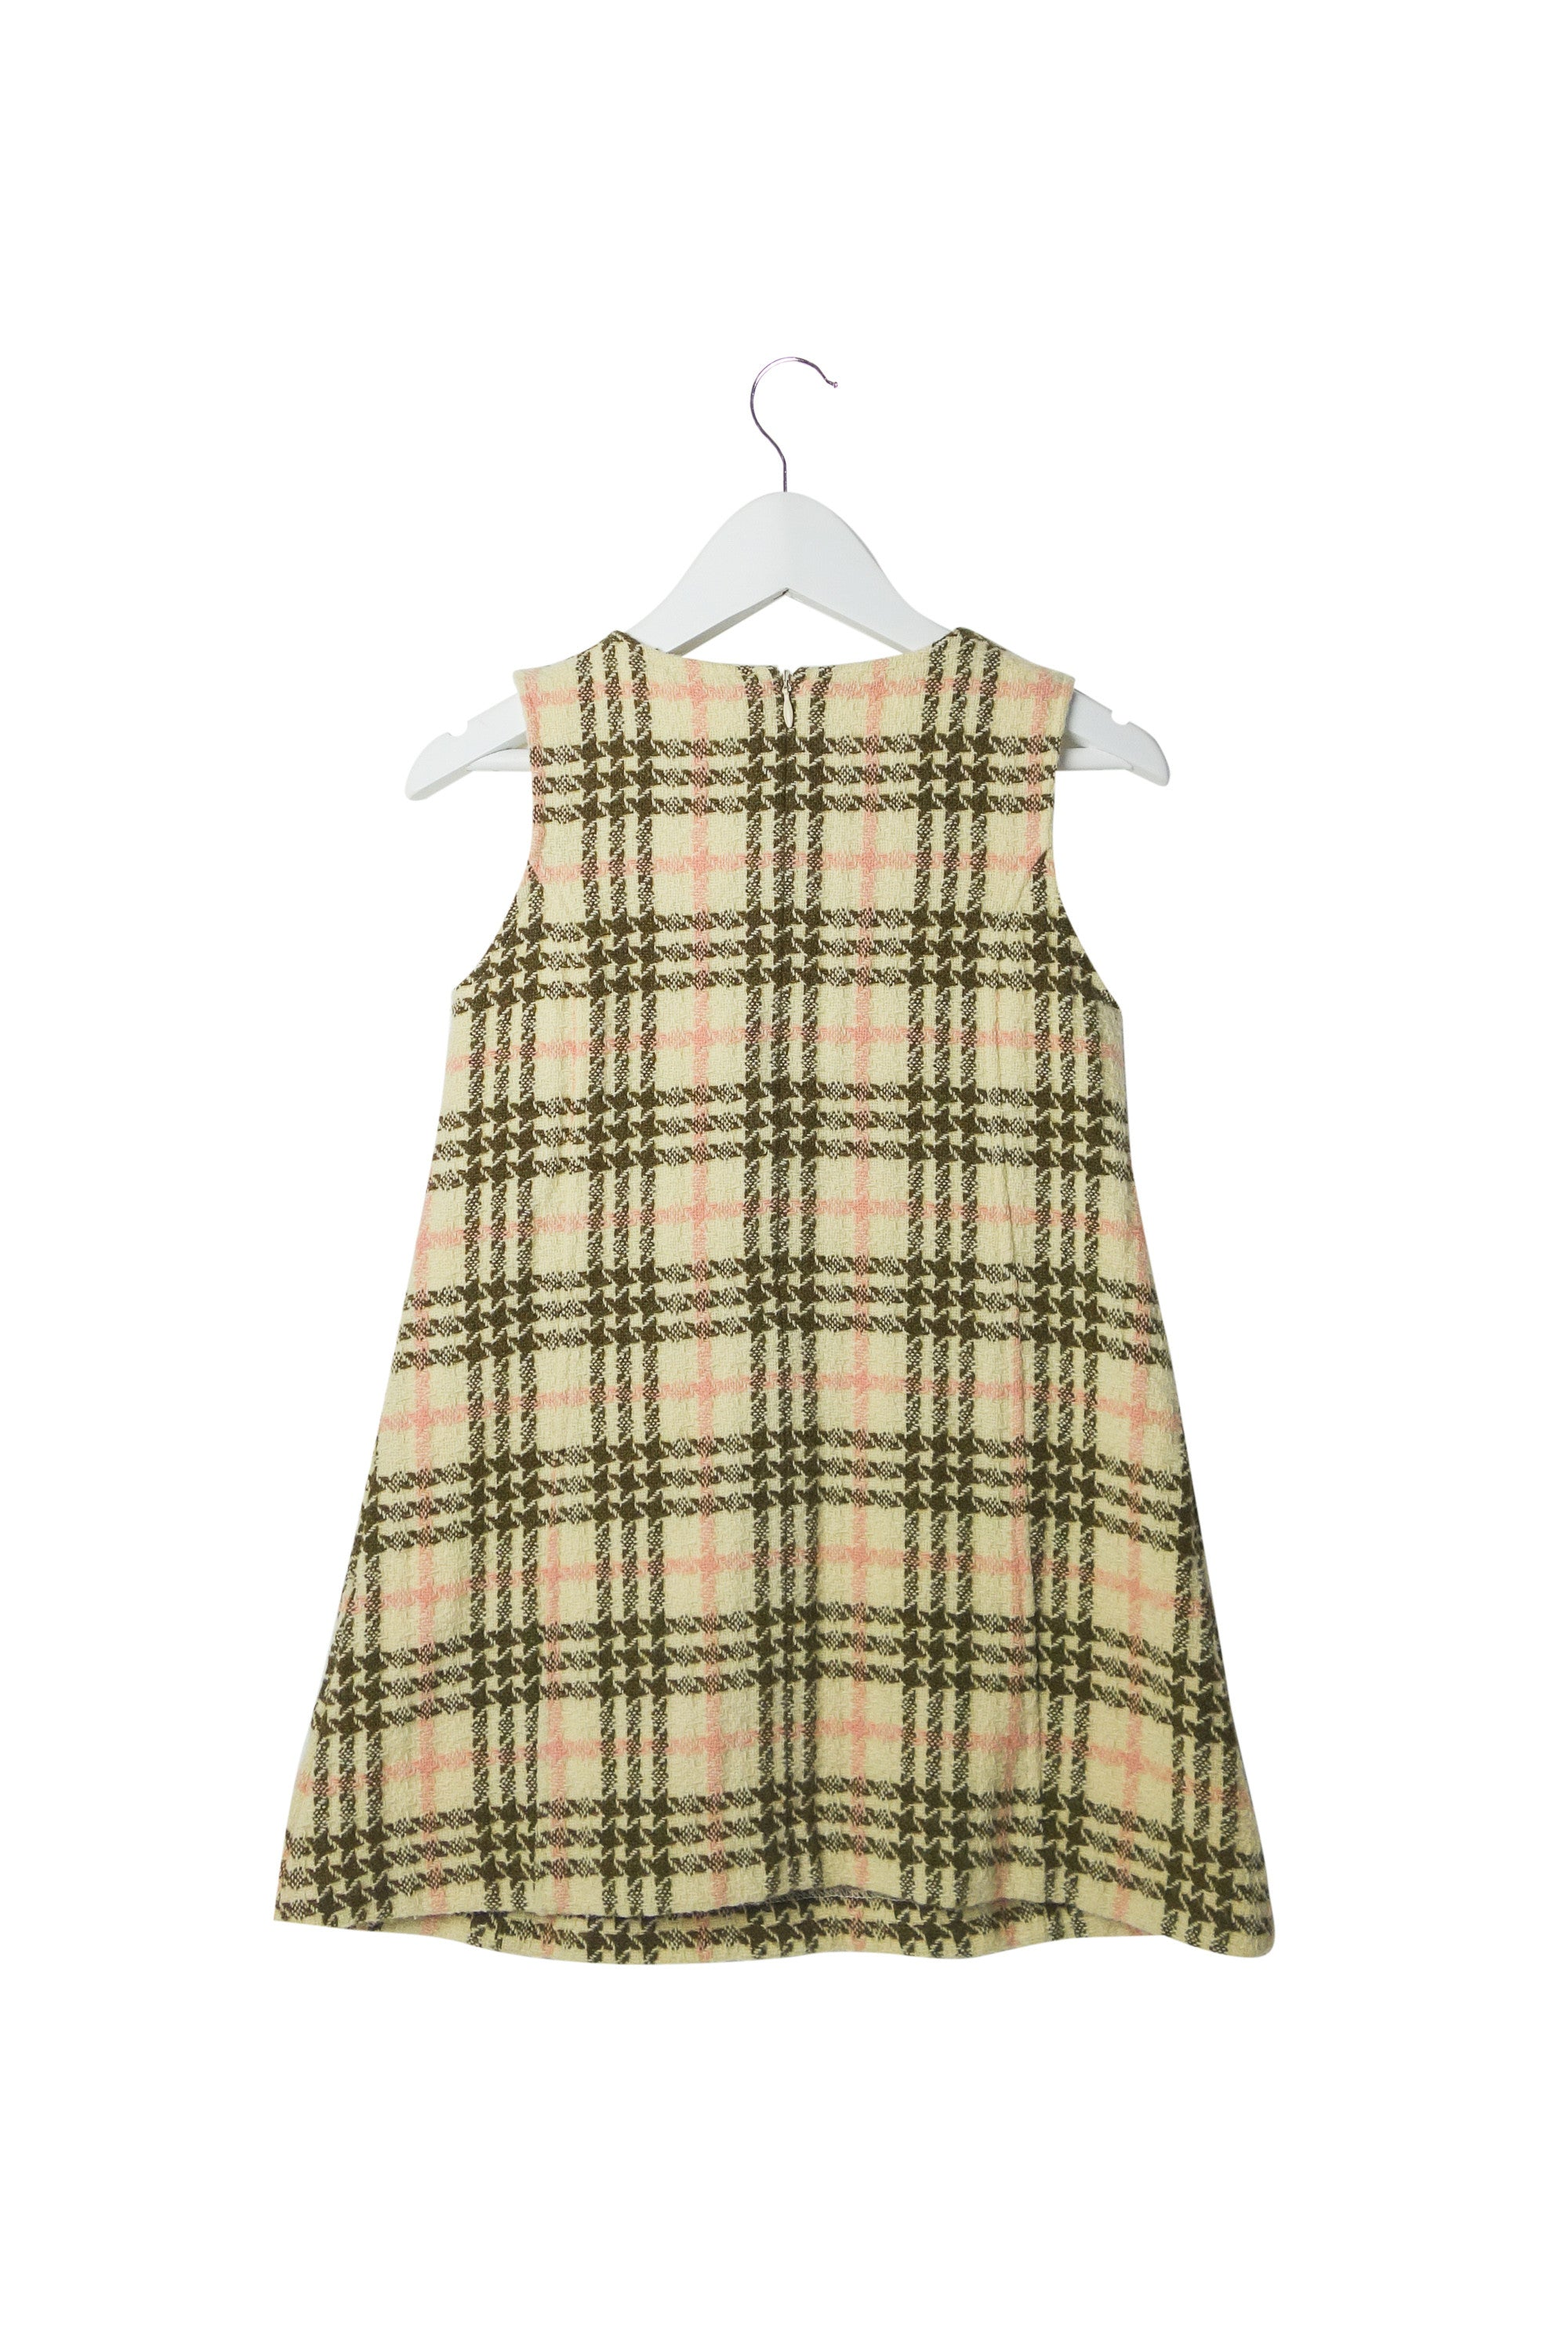 10003071 Burberry Kids~Dress 4T at Retykle